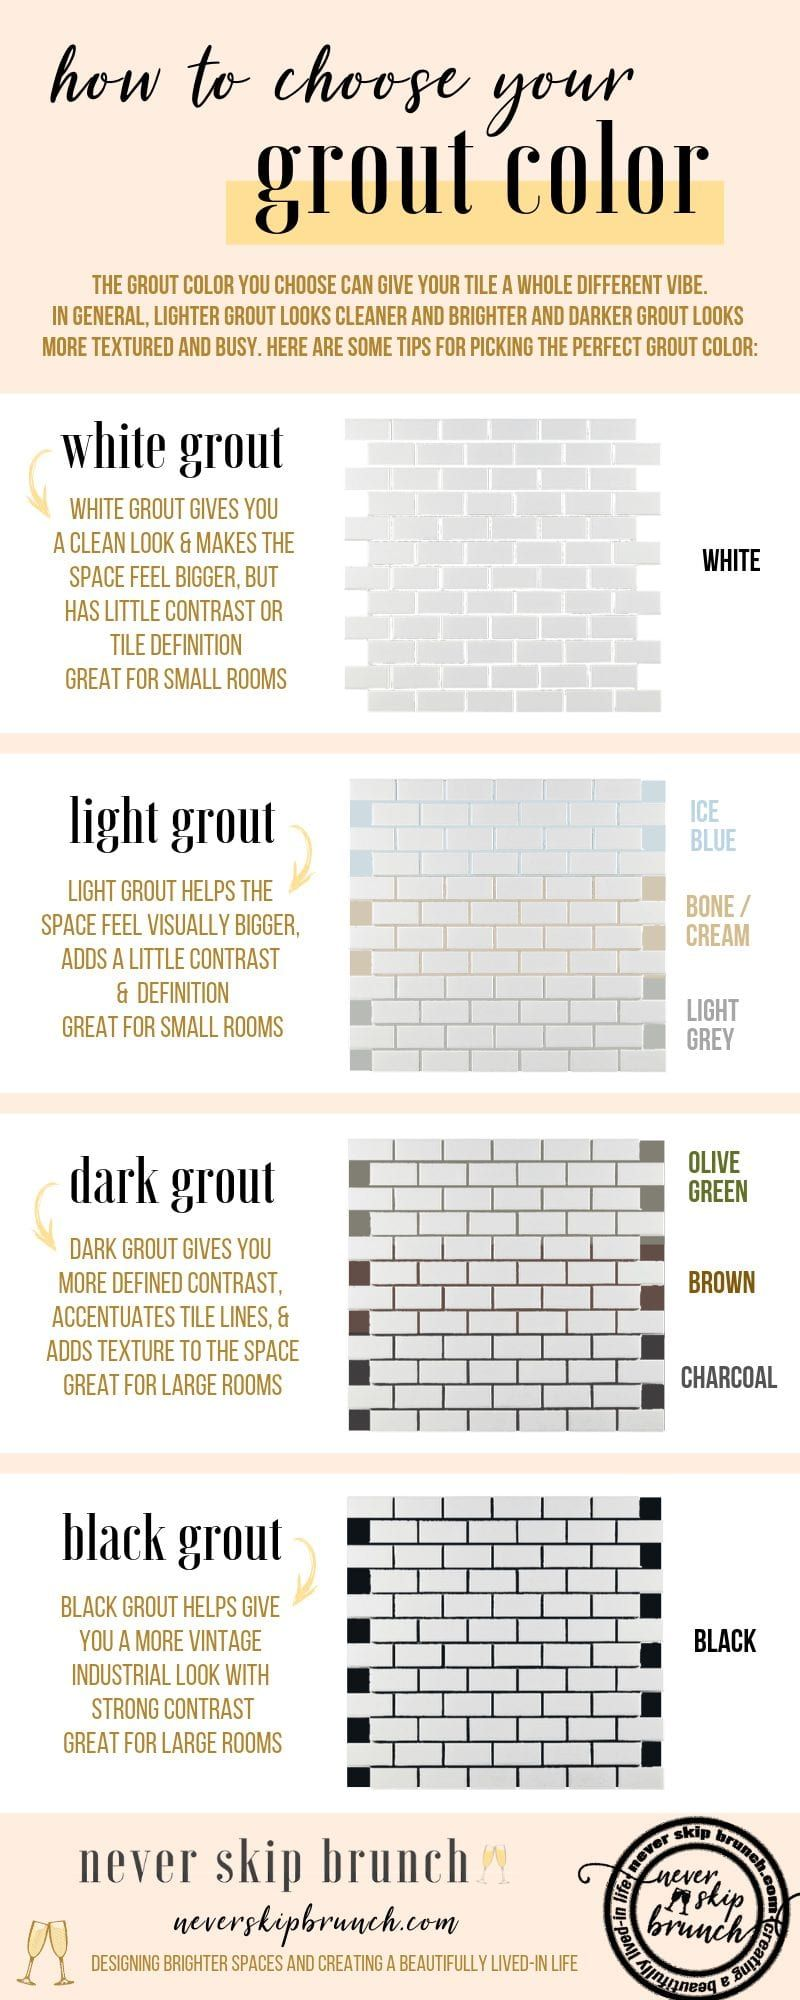 Backsplash Tile Refresh How To Make White Tile Pop For Under 20 White Subway Tiles Kitchen Tiles Grey Subway Tiles